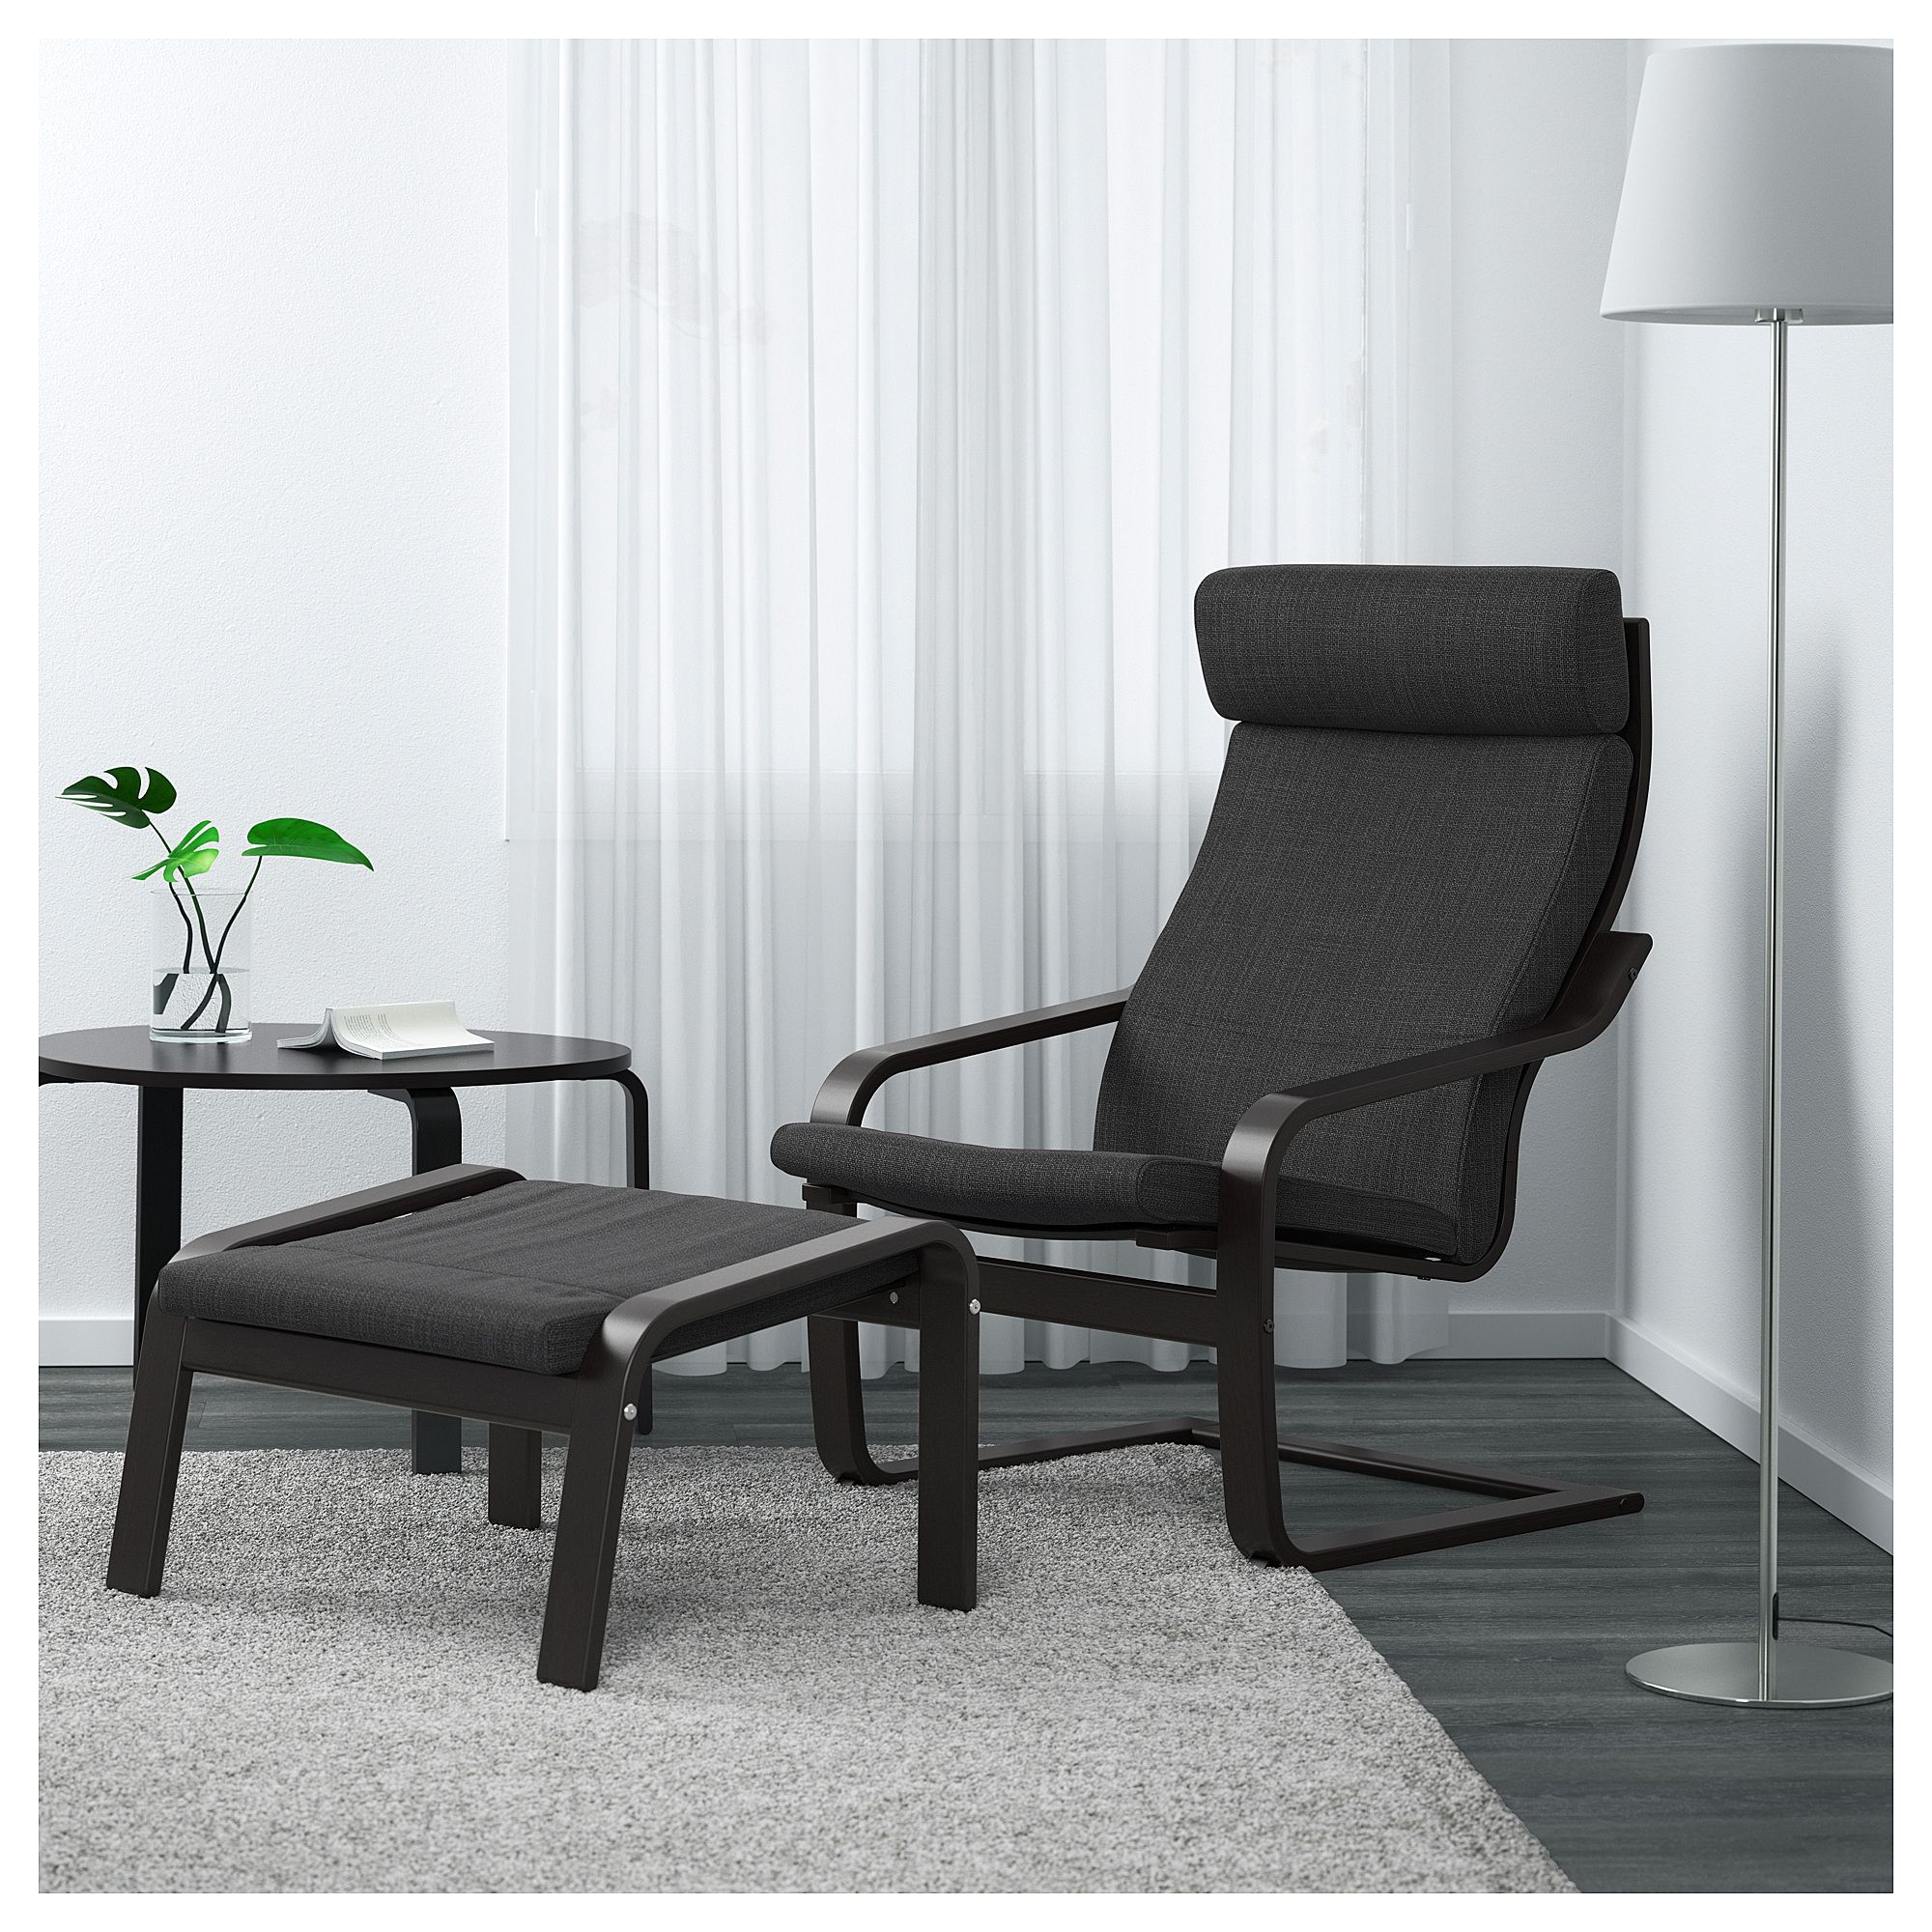 Po 196 Ng Armchair Black Brown Hillared Anthracite Gift